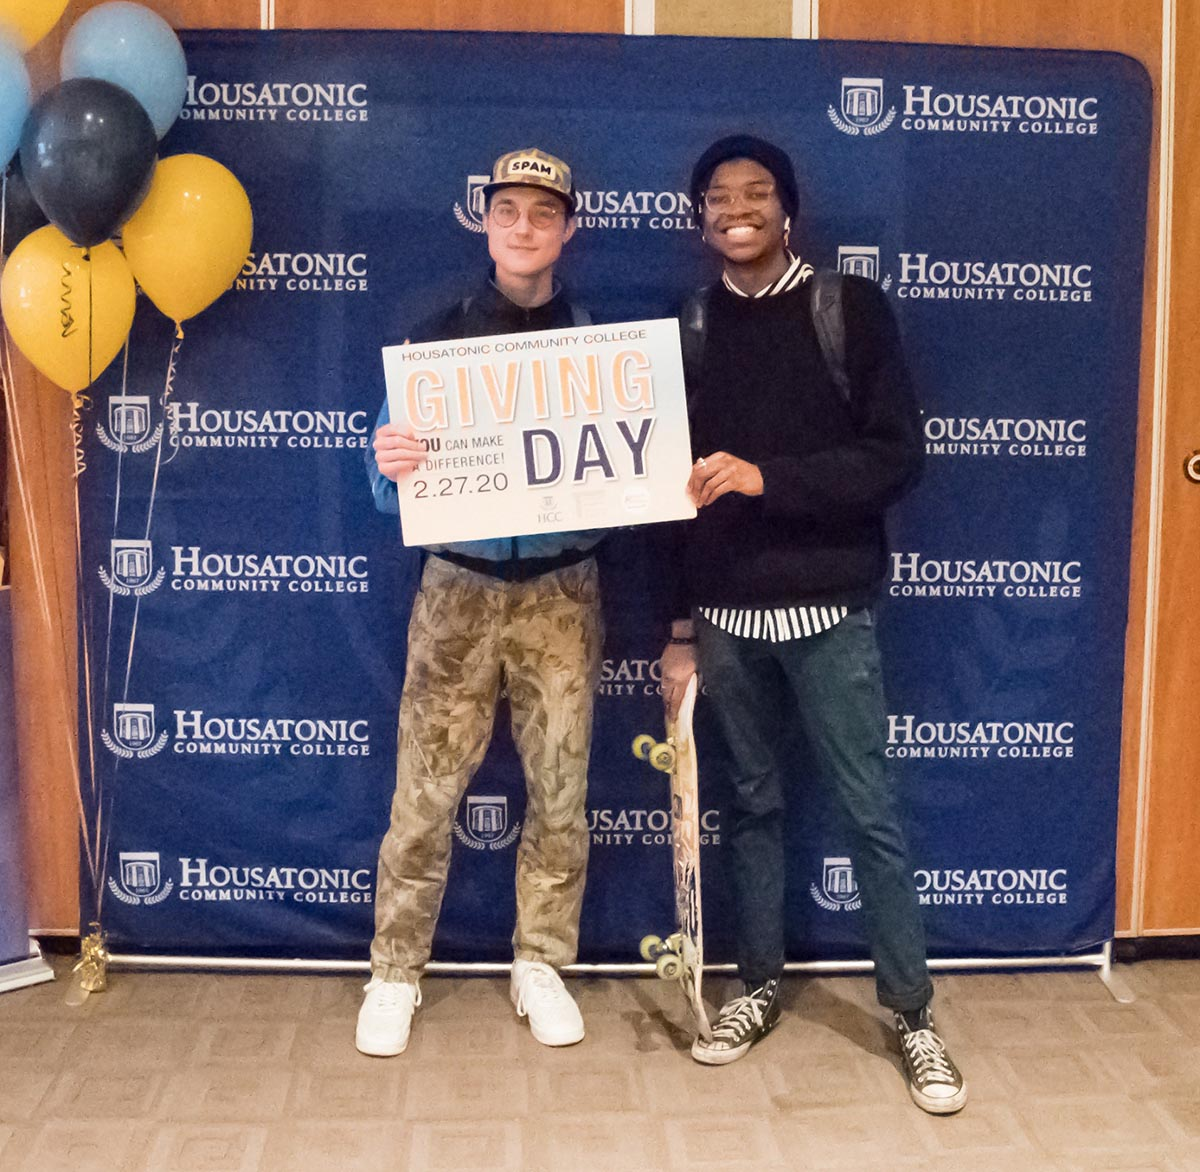 Housatonic Community College students, faculty and donors united to raise over $30,000 in 24-hours for the school's Foundation on Giving Day.